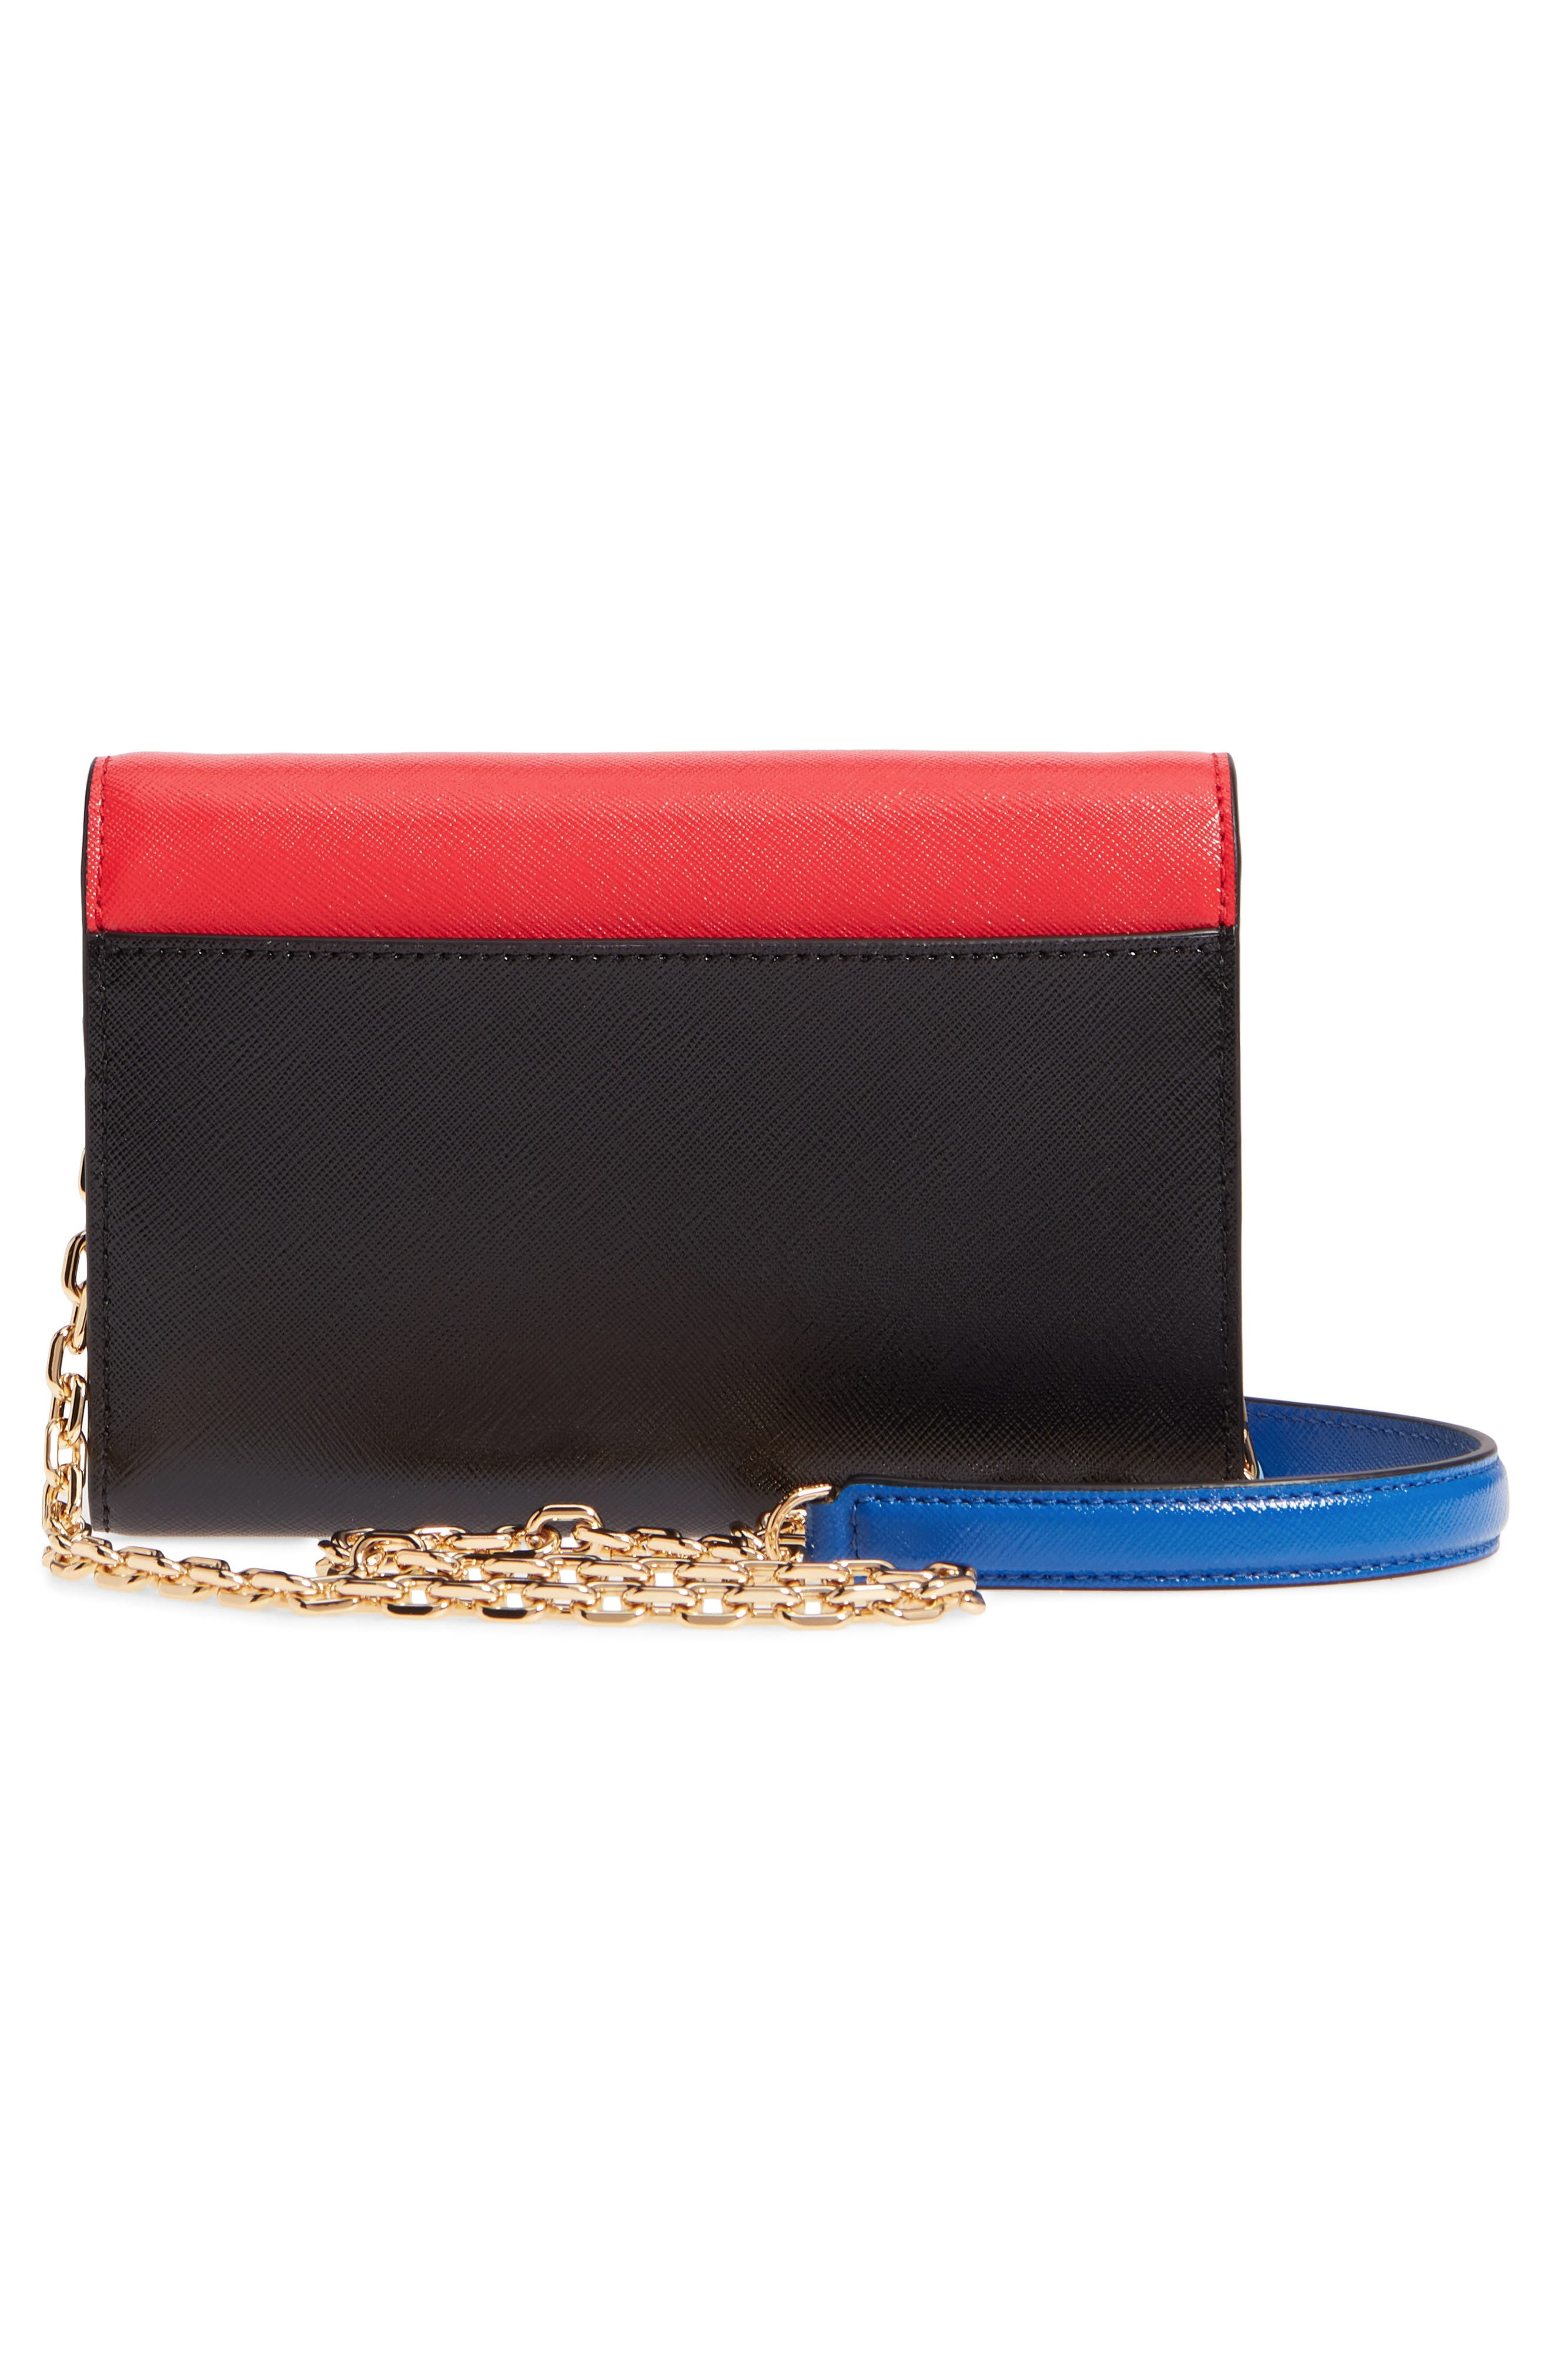 Snapshot Leather Wallet on a Chain,                             Alternate thumbnail 3, color,                             Poppy Red Multi